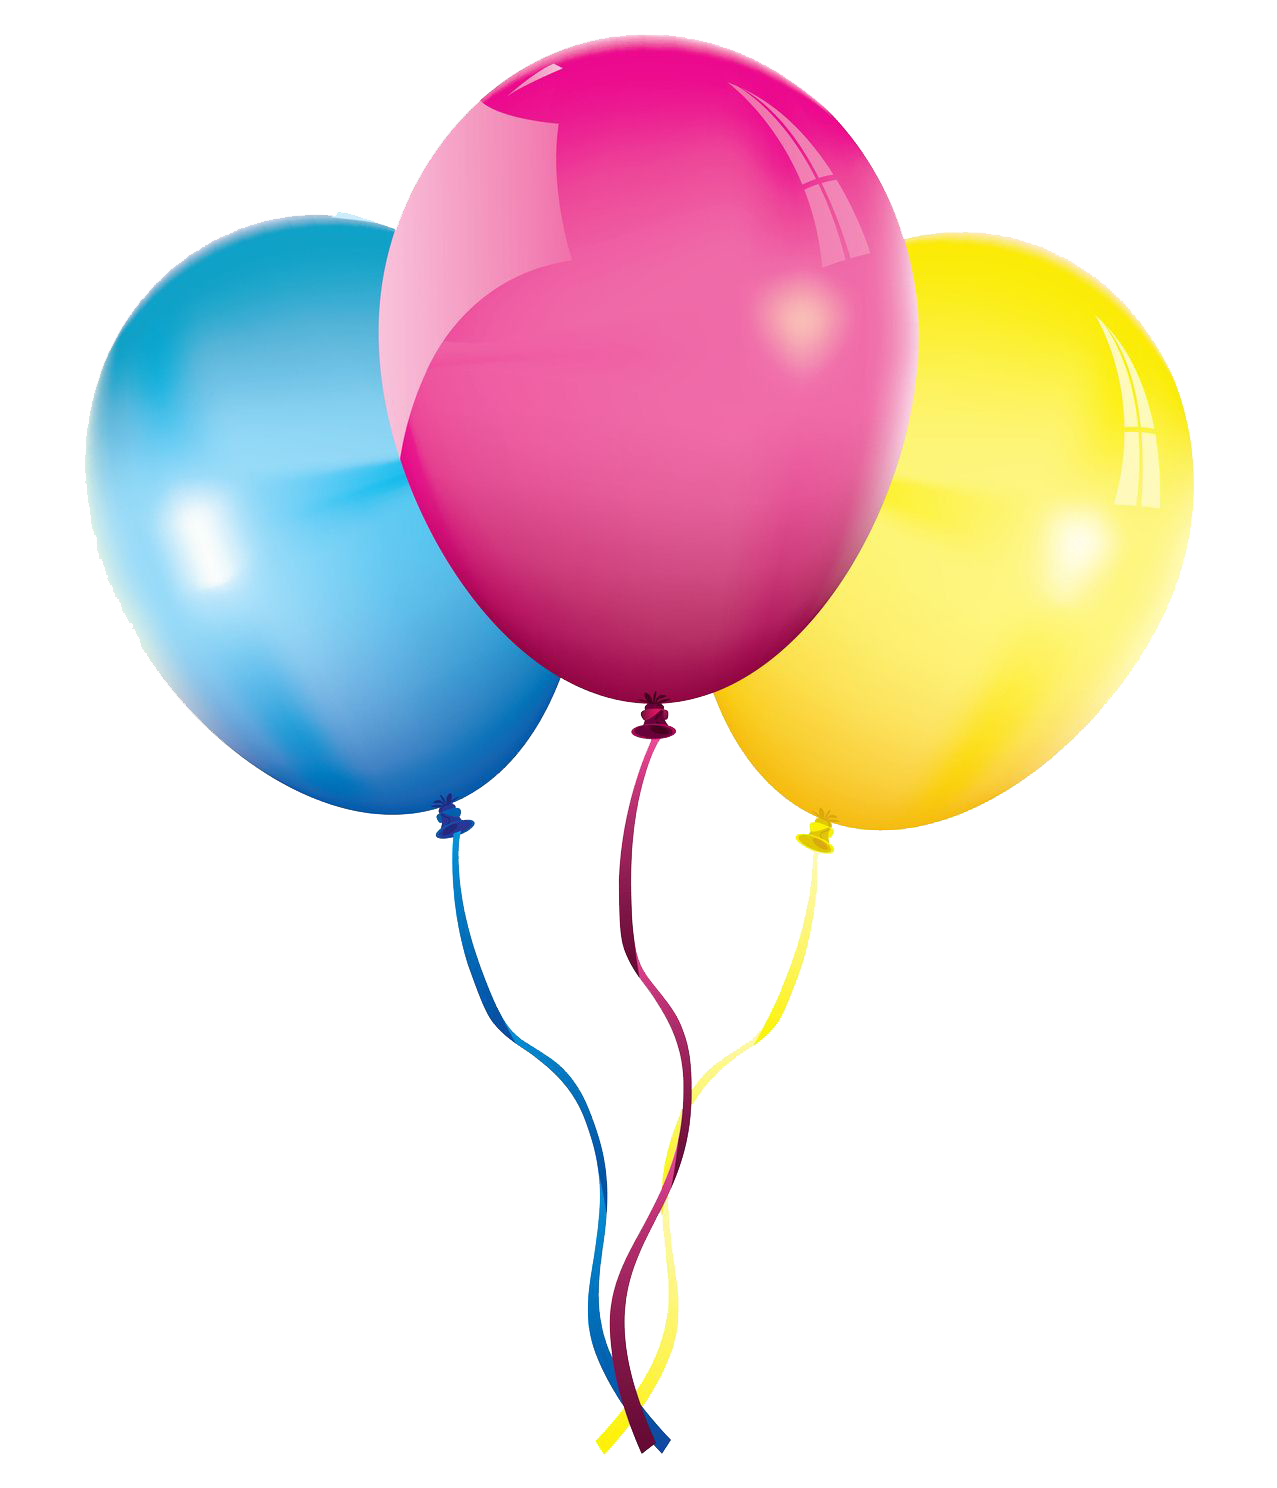 Balloons Png File - Balloon, Transparent background PNG HD thumbnail